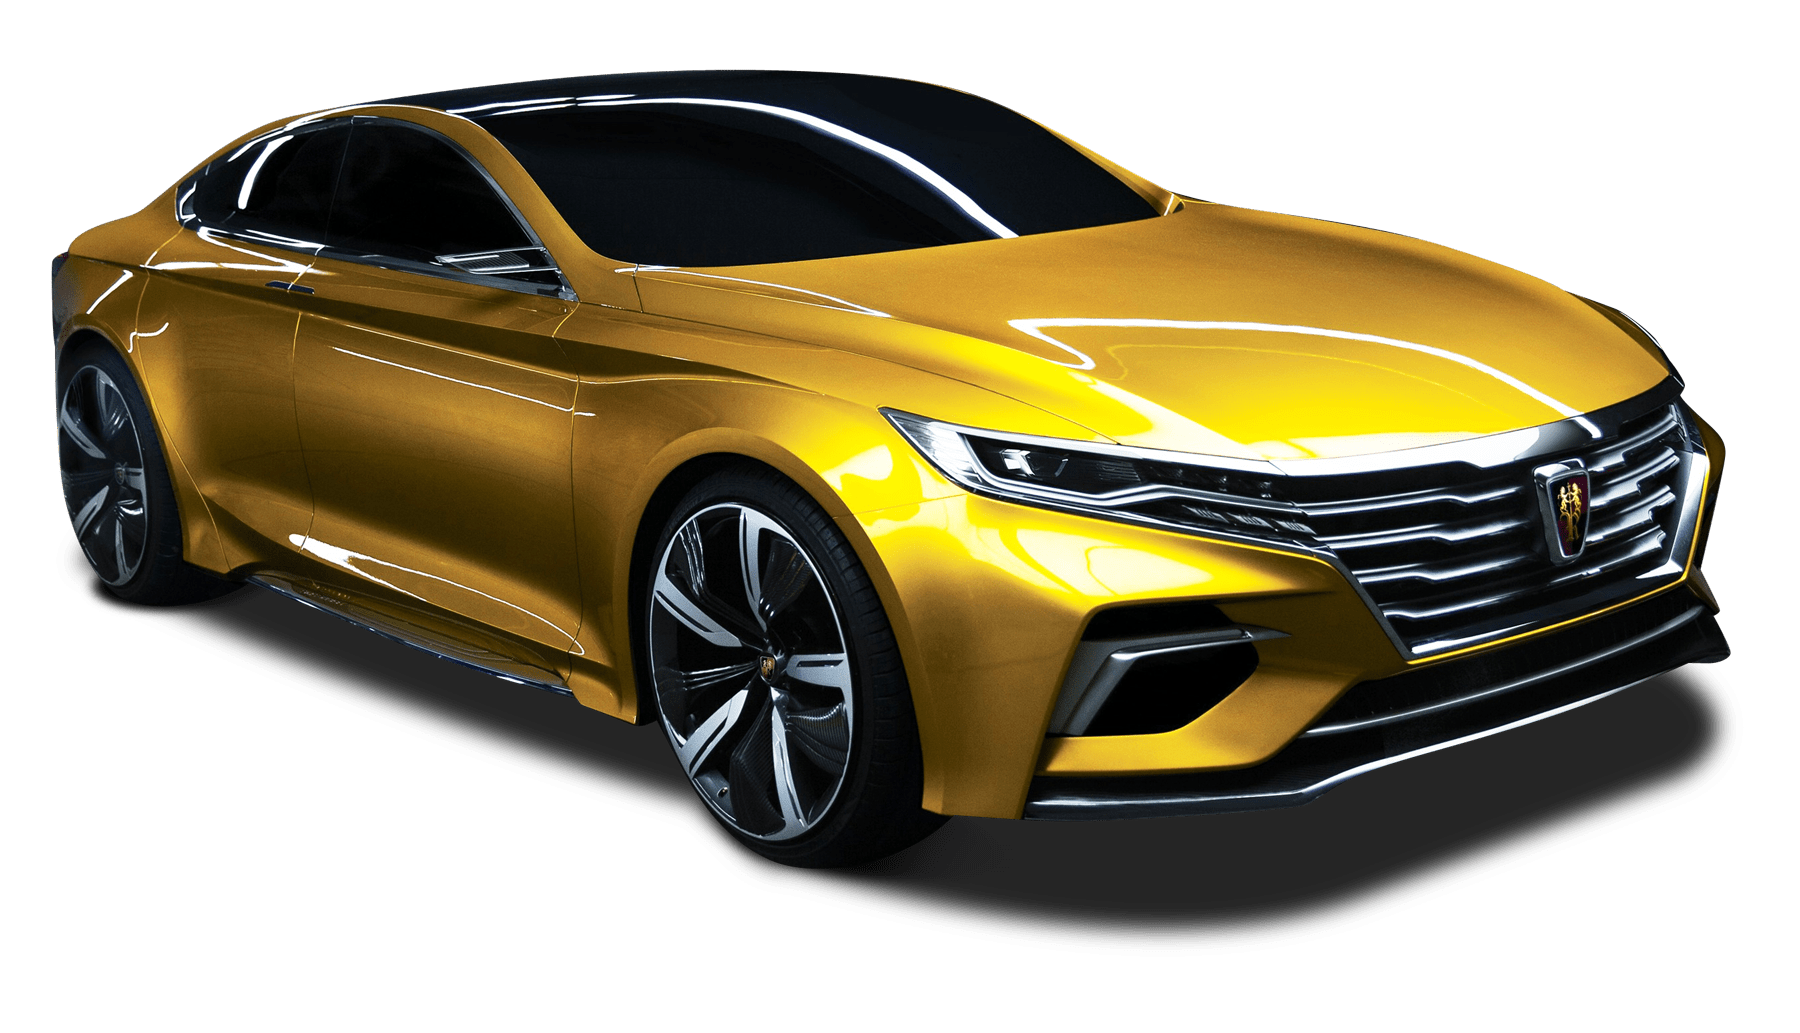 Luxury car clipart png free download Roewe Vision R Yellow Gold transparent PNG - StickPNG png free download